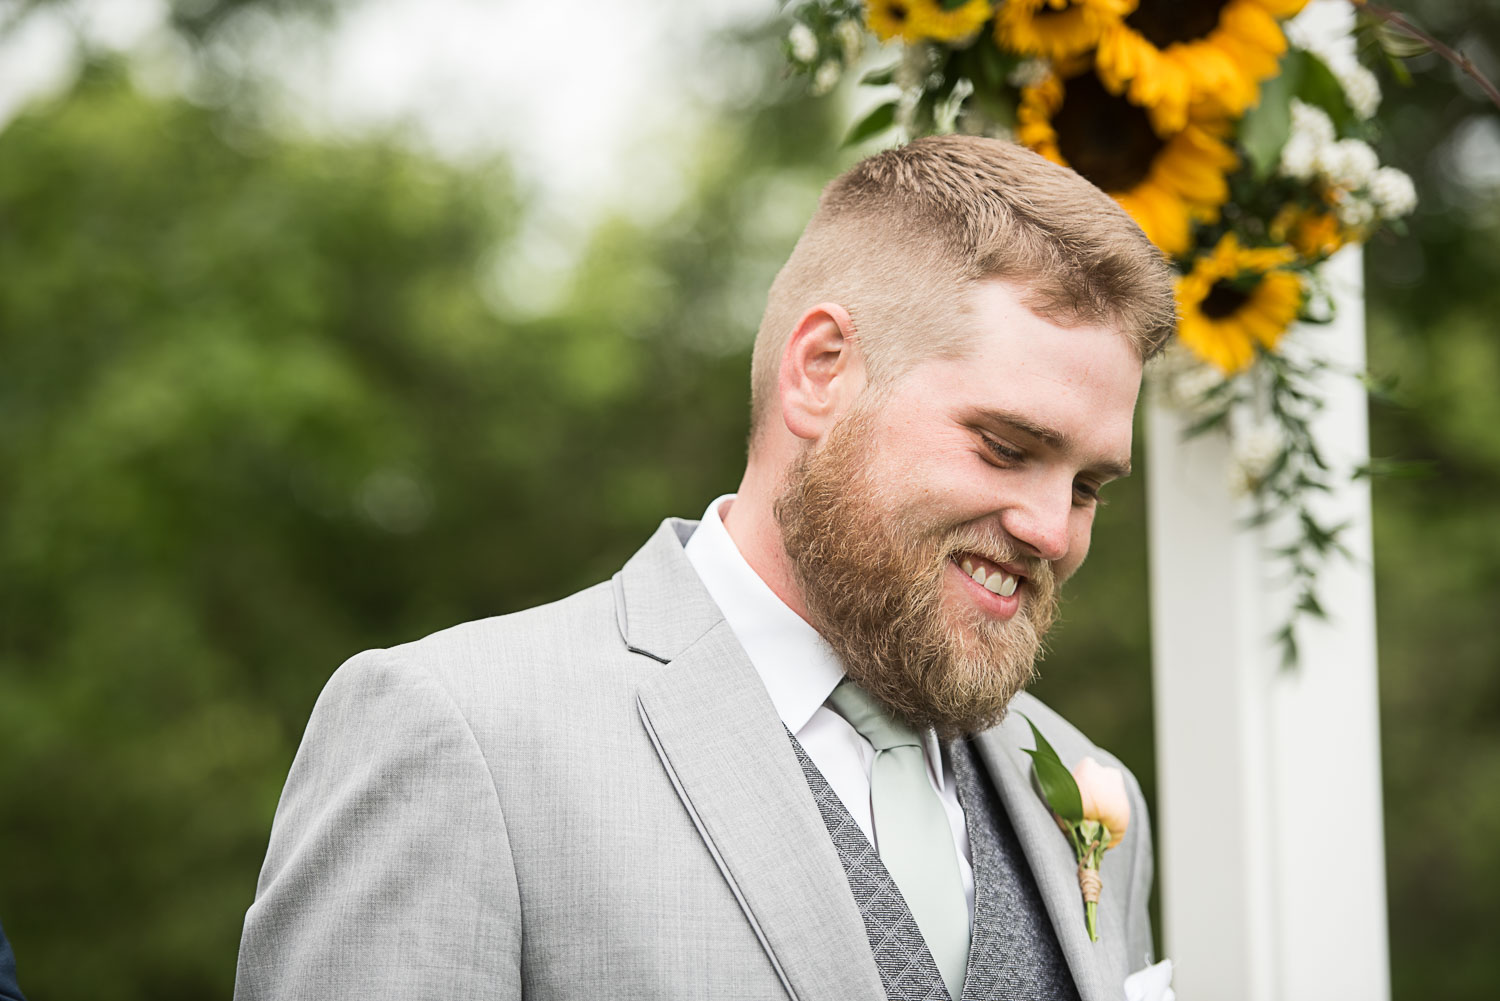 59 Groom reaction to bride walking down aisle.jpg